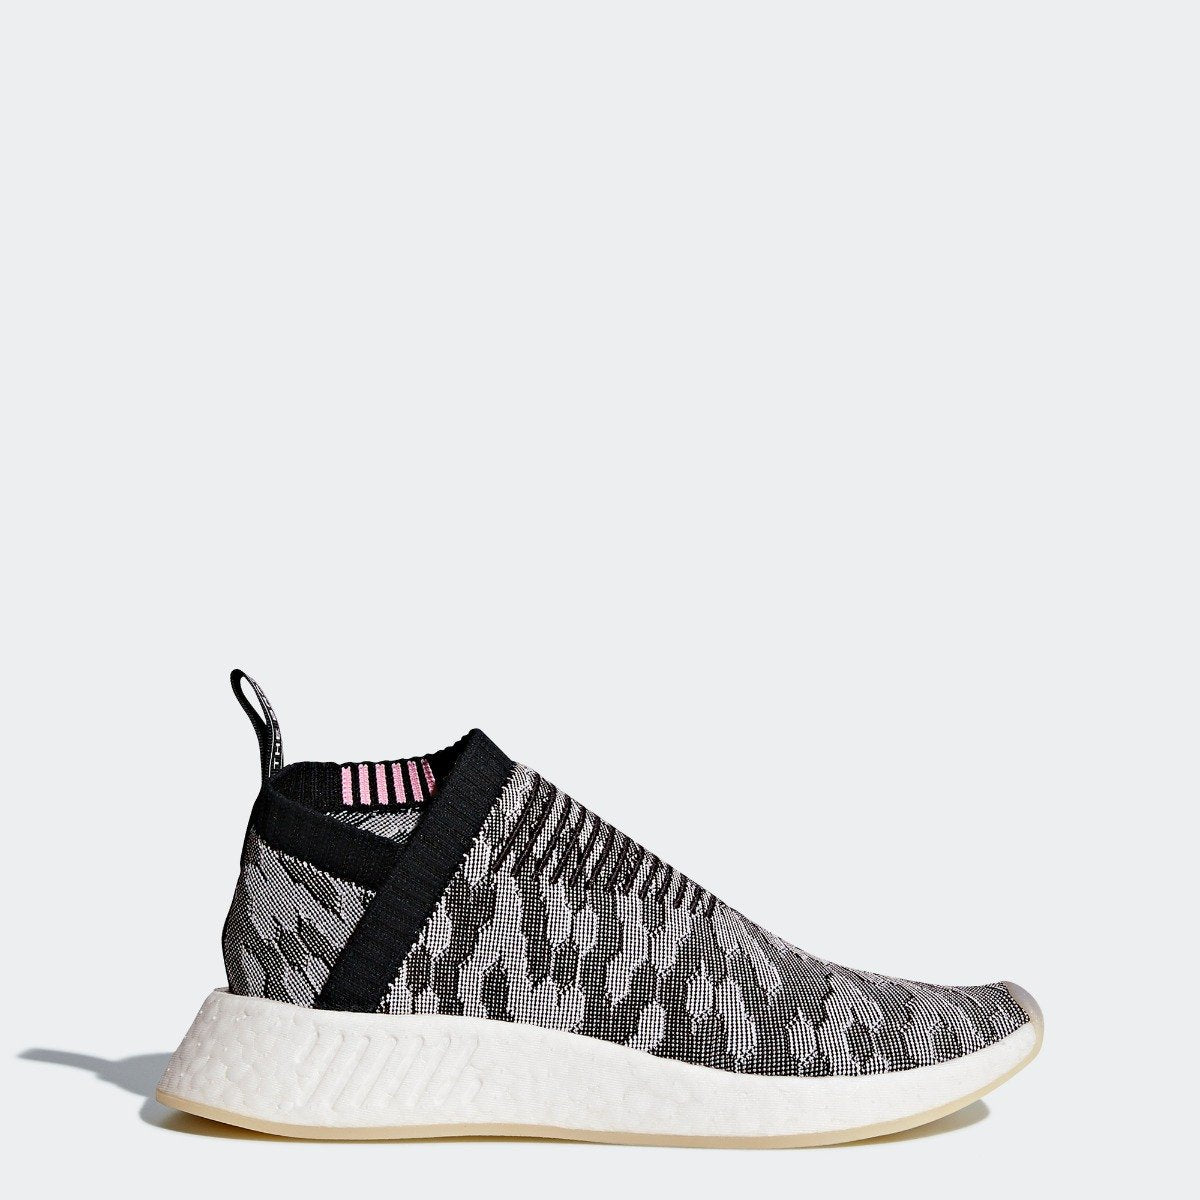 3d5cbfed902d8 Women s adidas Originals NMD CS2 Primeknit Shoes Black with Pink ...